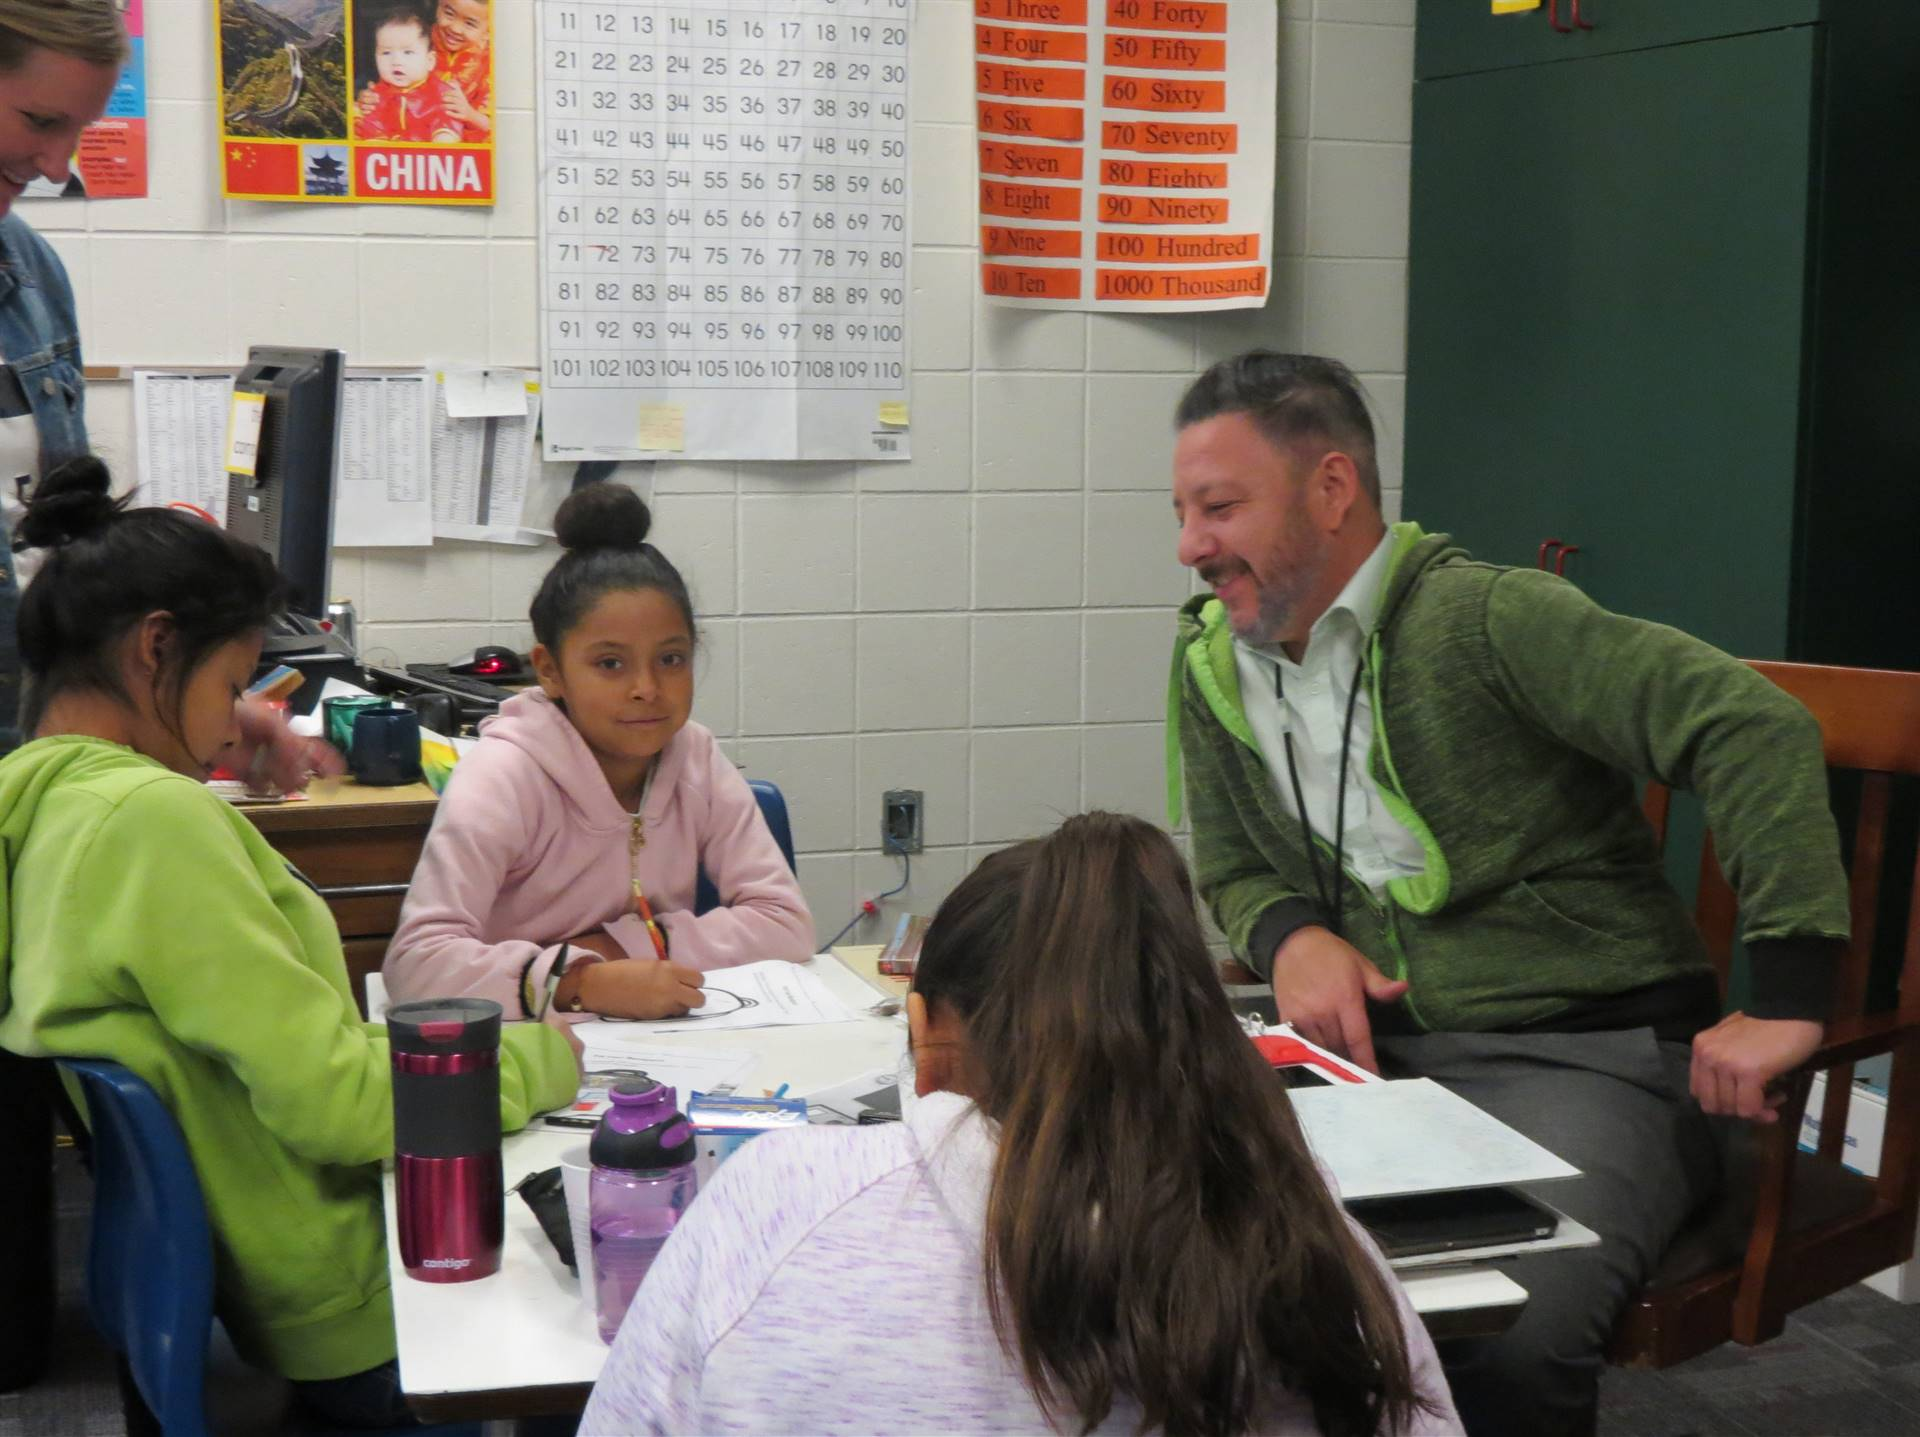 Interpreter working with students